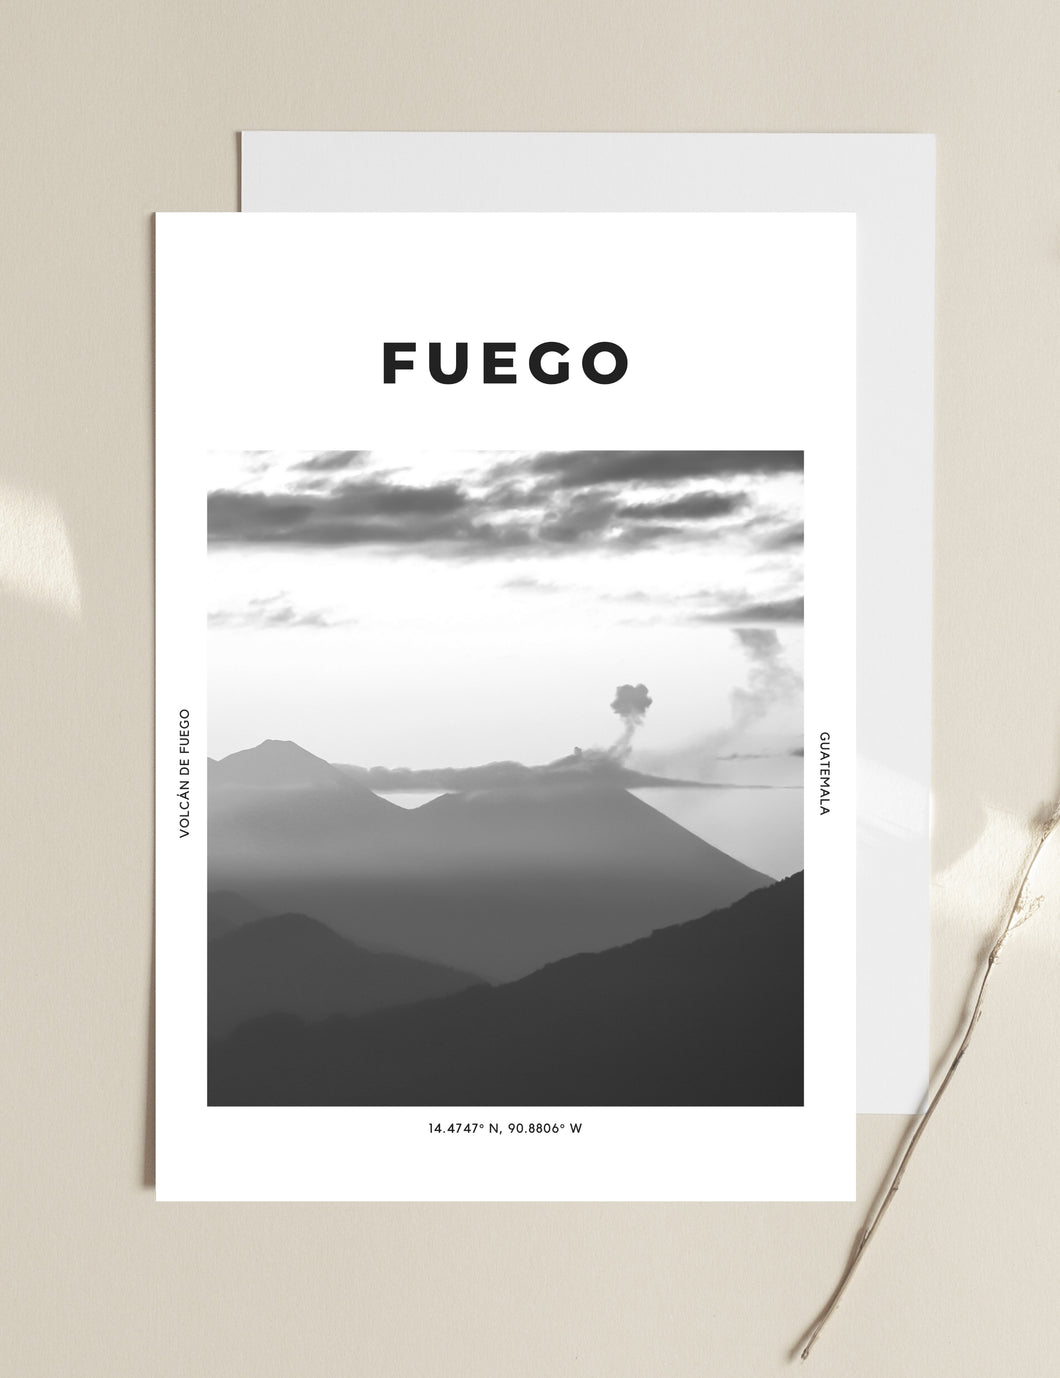 Fuego 'Volcano On Fire' Print